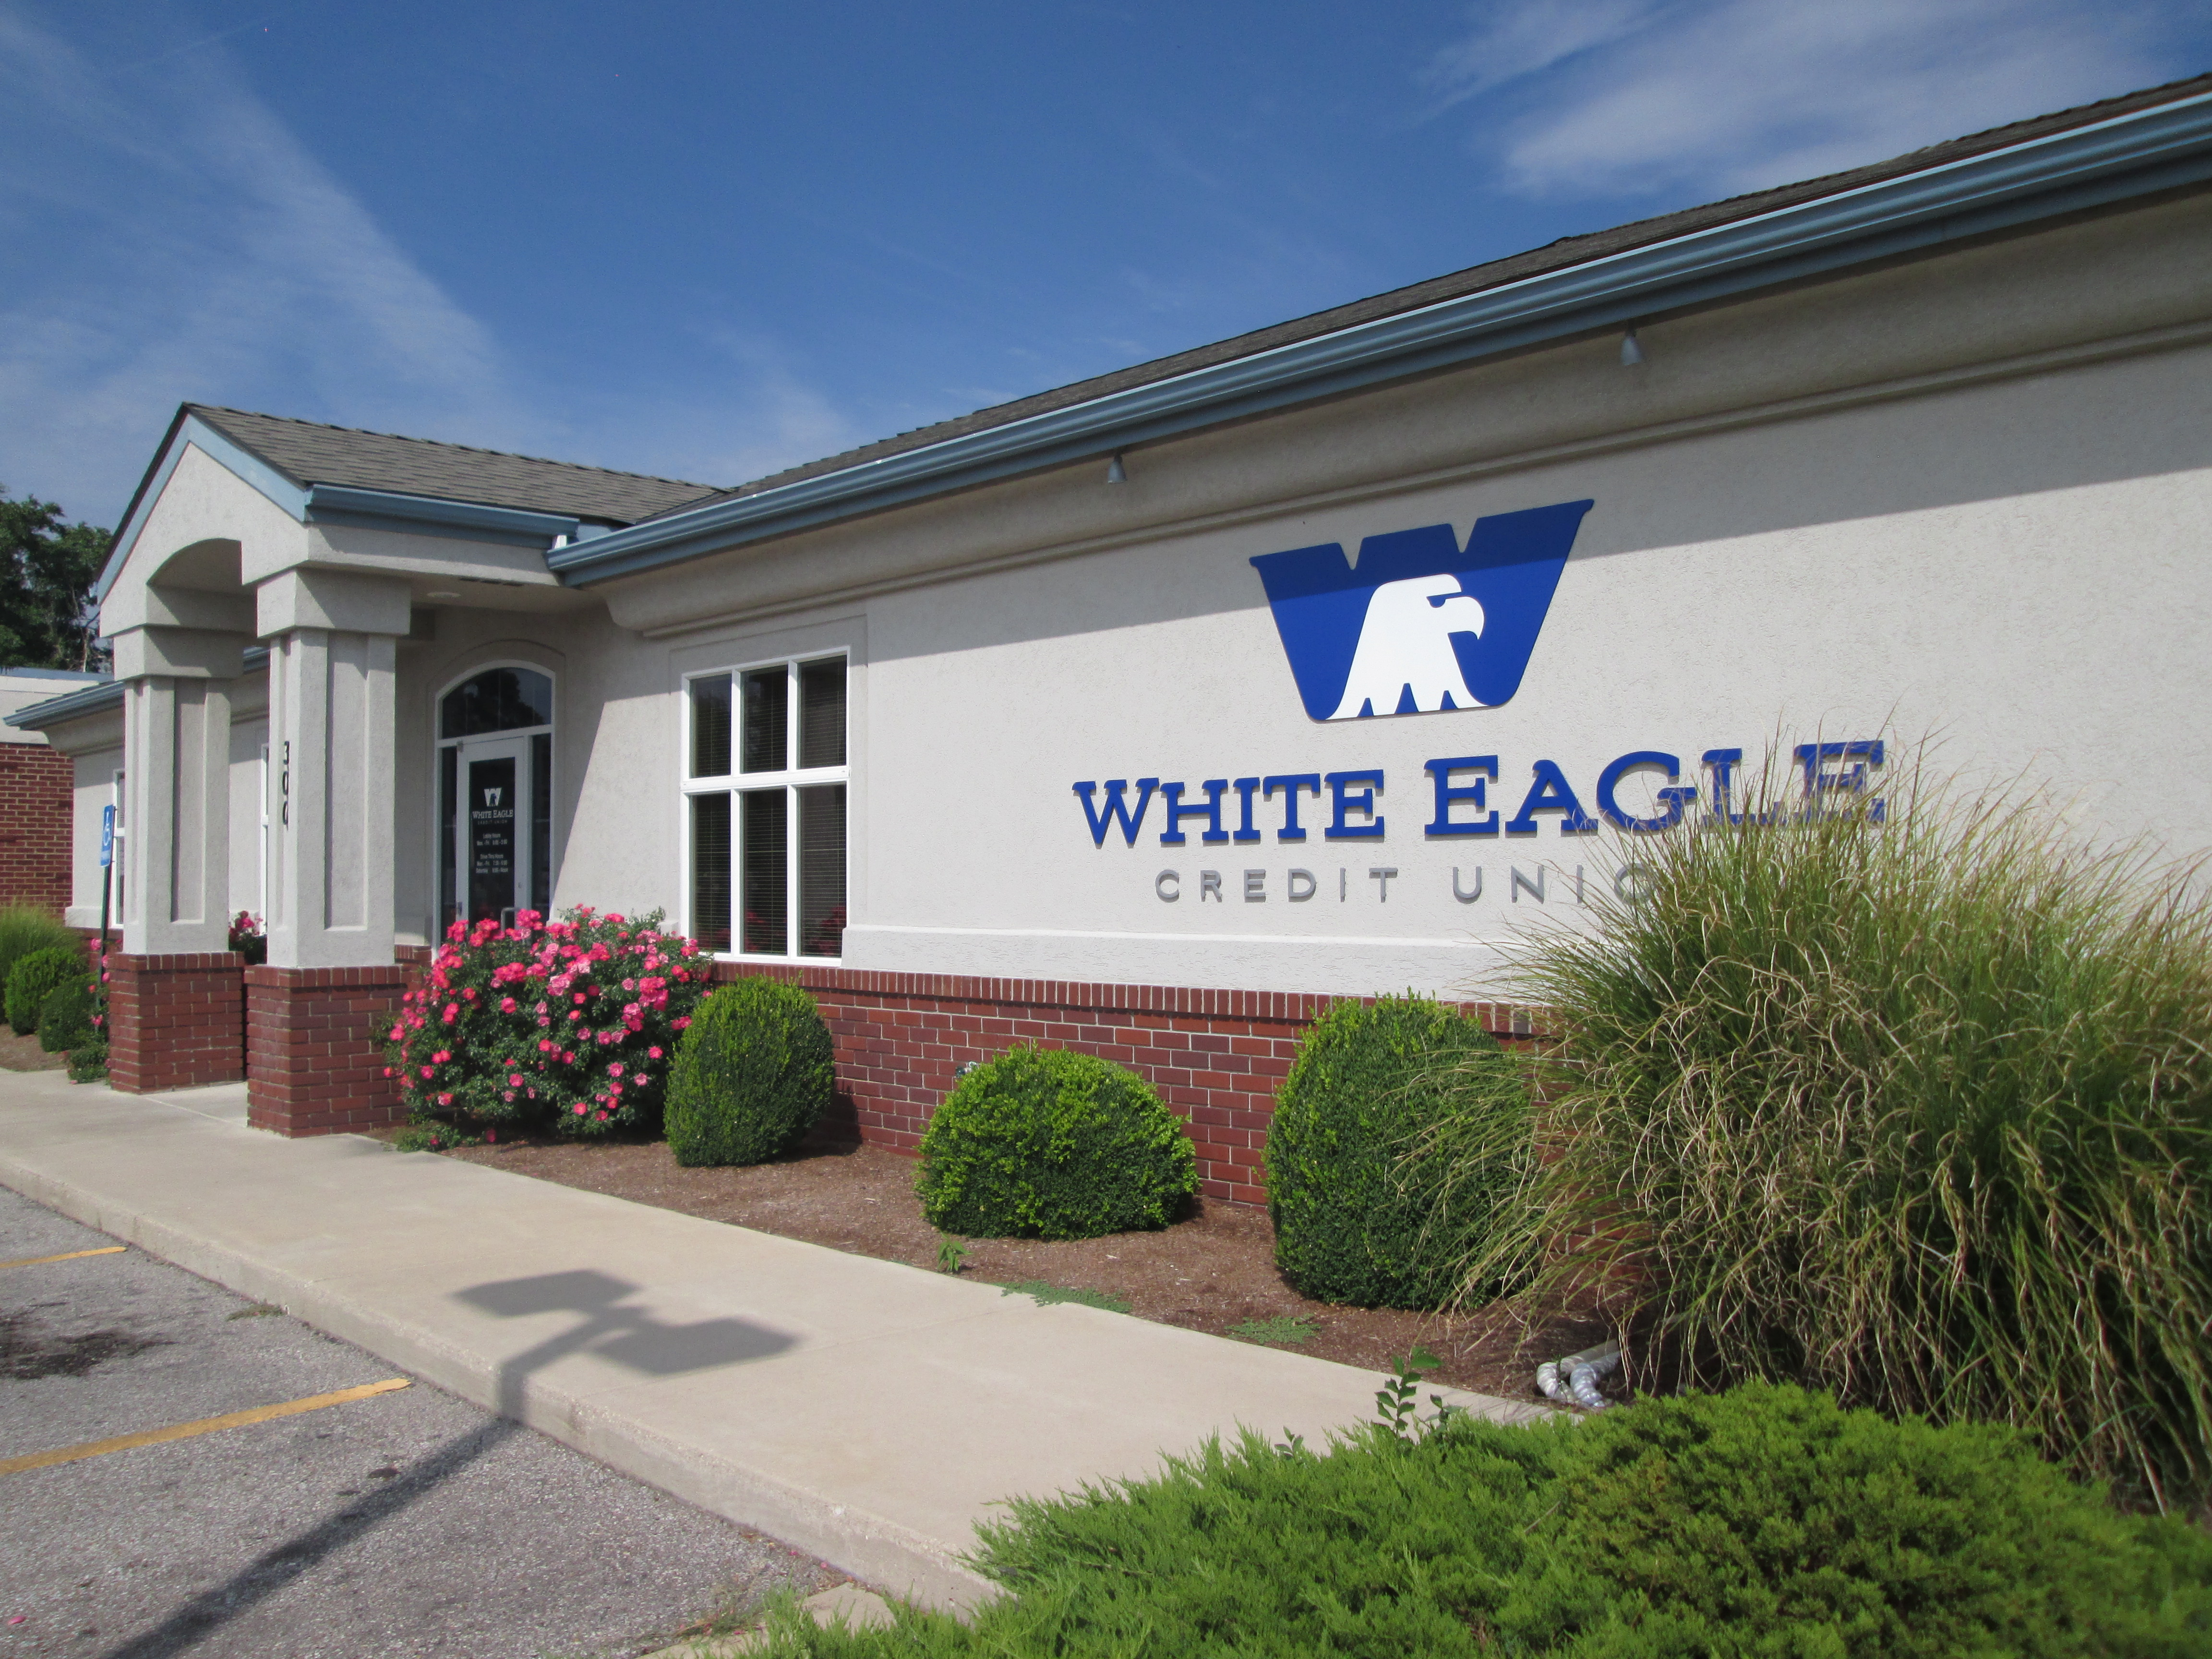 Welcome to White Eagle Credit Union